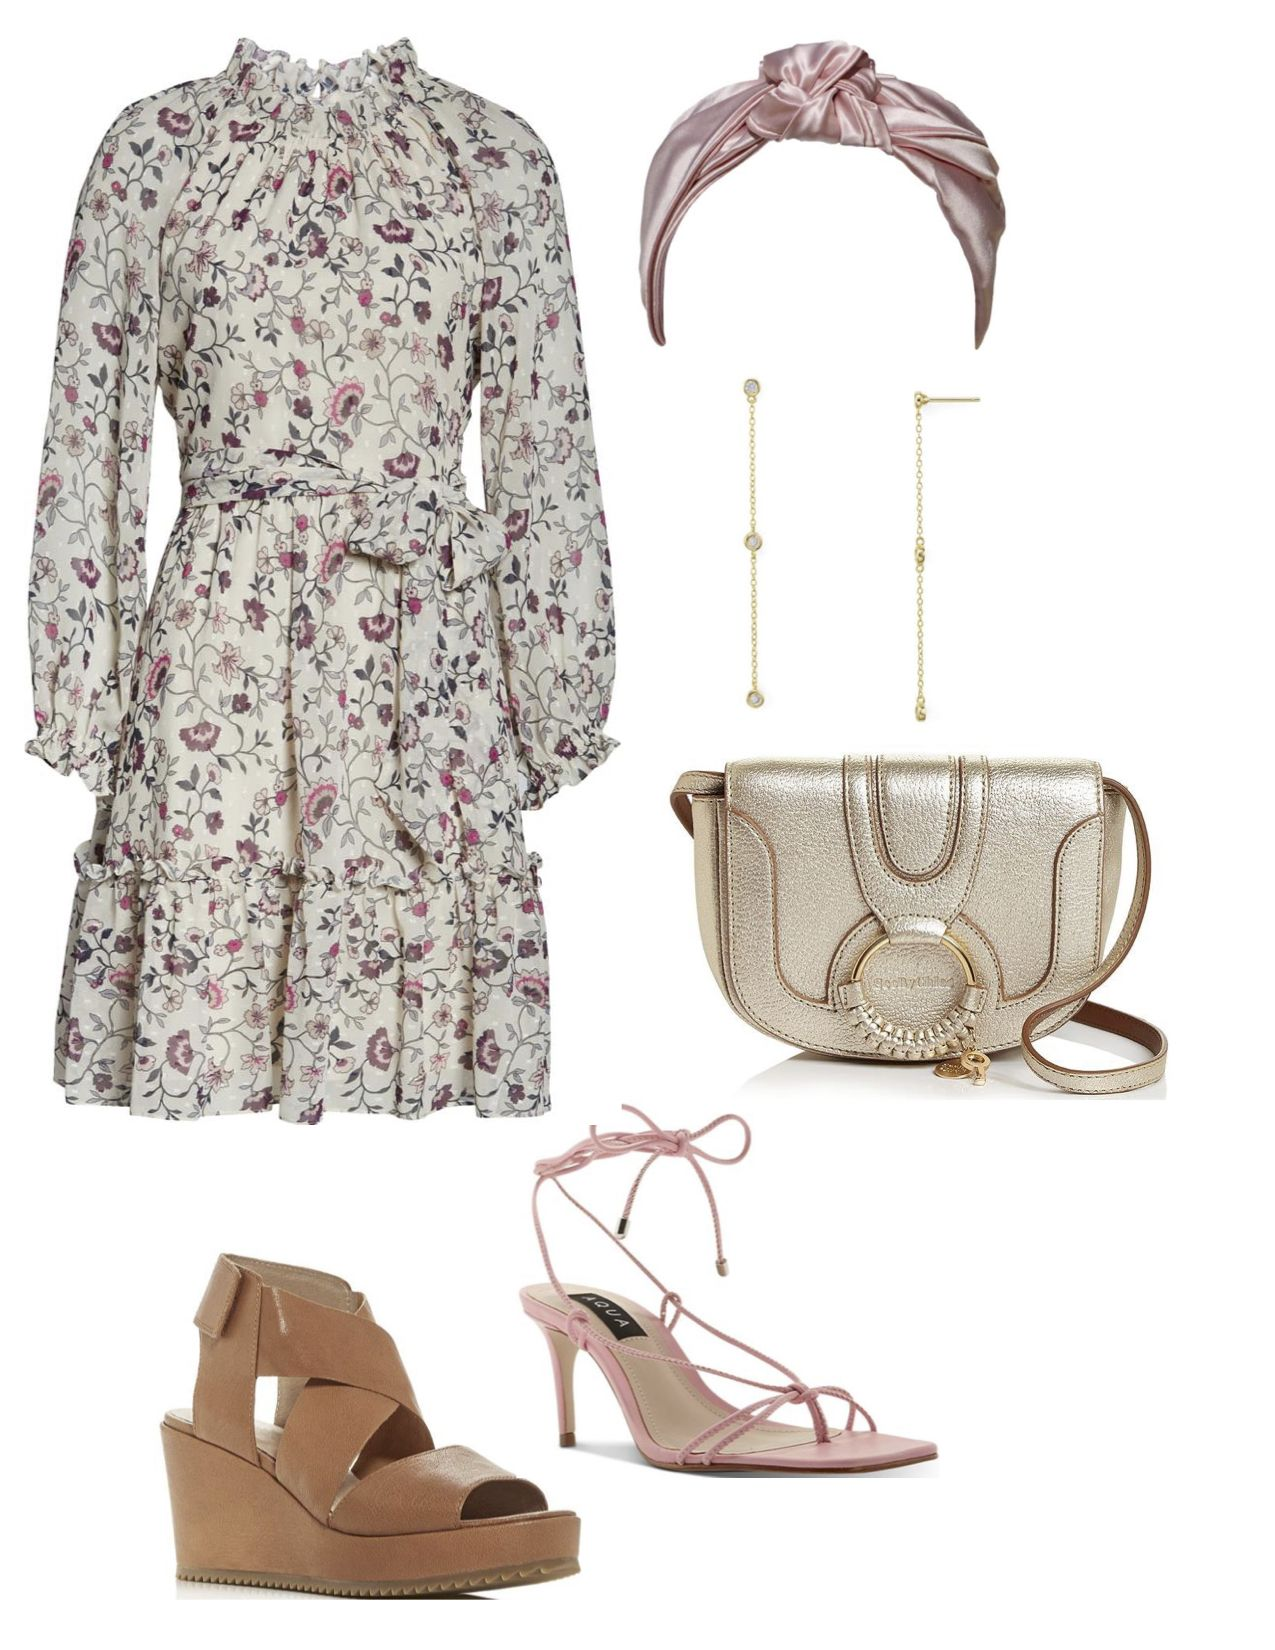 Spring Easter Outfit in 20  Cute outfits, Outfits, Easter outfit